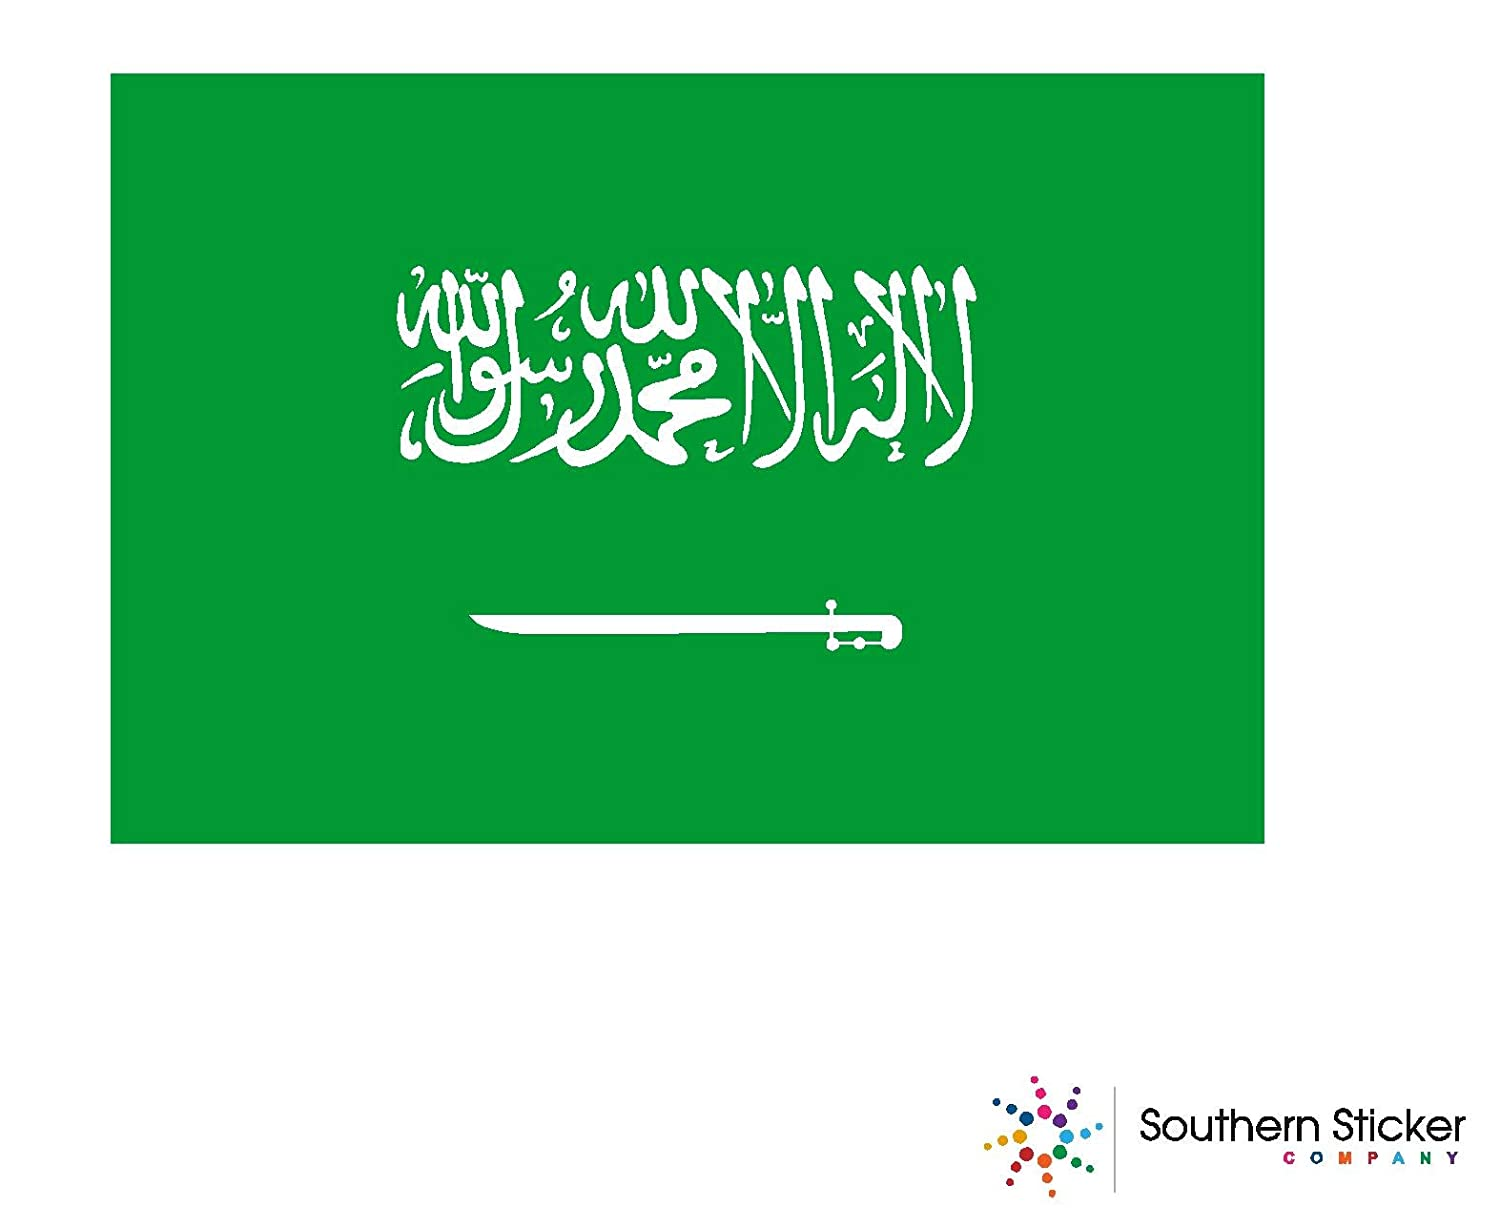 Expressdecor country flag saudi arabia 3x5 inches size funny stickers for construction hard hat pro union working men lunch box tool box symbol window